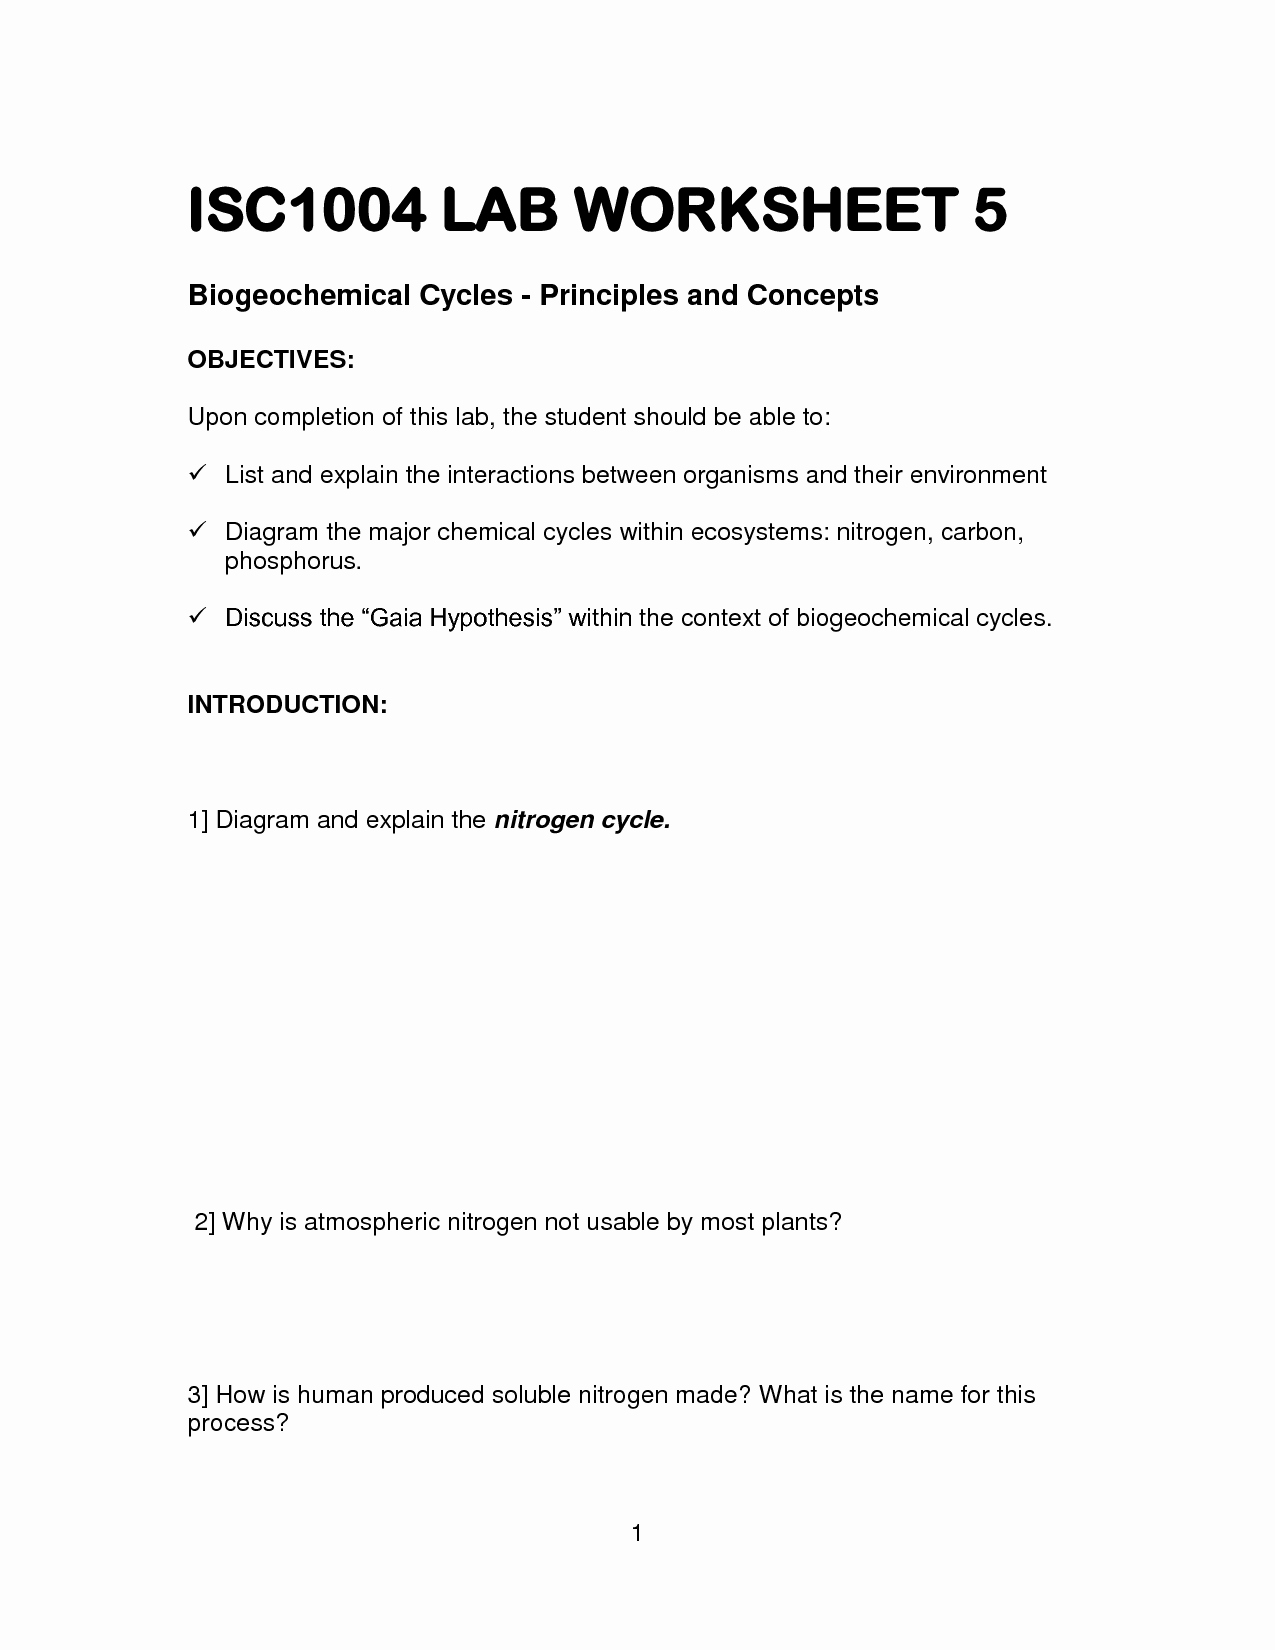 Biogeochemical Cycles Worksheet Answers Awesome Geology Labs Line Virtual Dating Answers Oops This Page